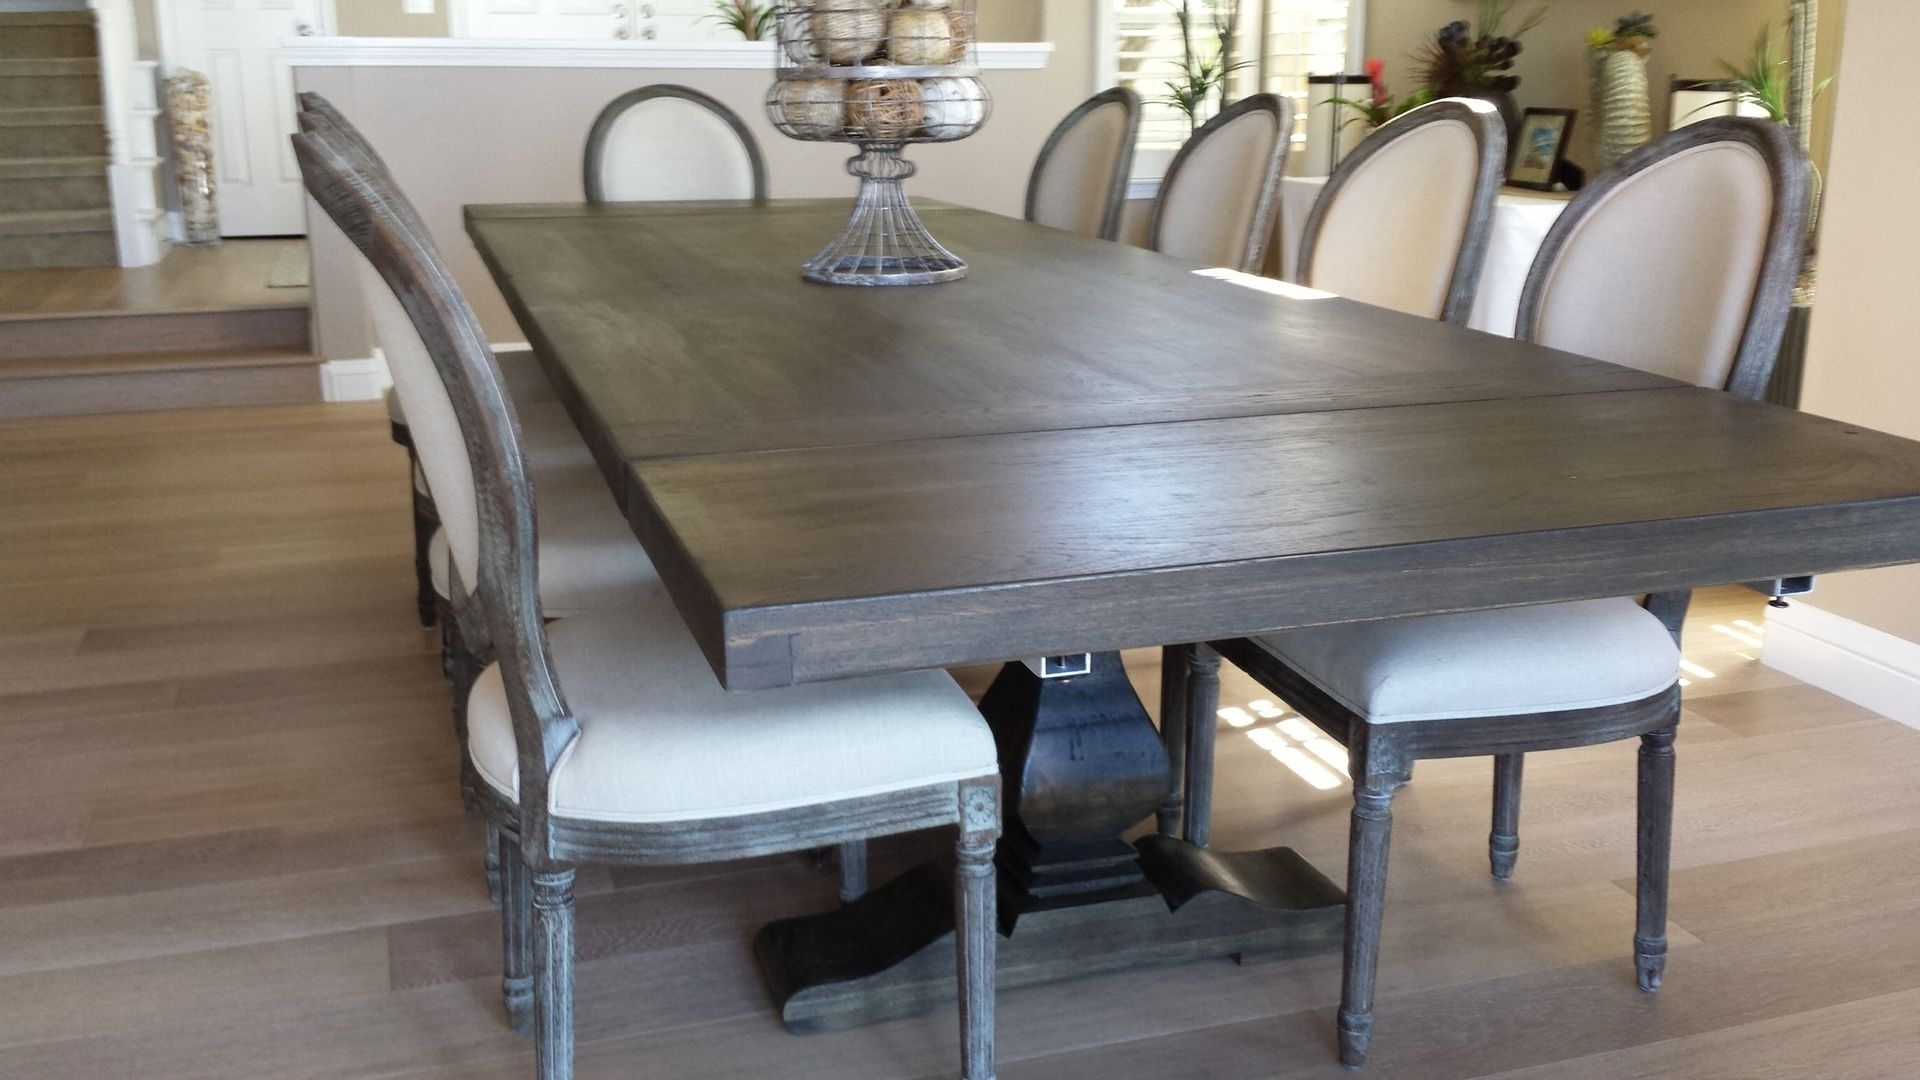 Custommade Regarding Well Liked Extendable Square Dining Tables (View 4 of 25)